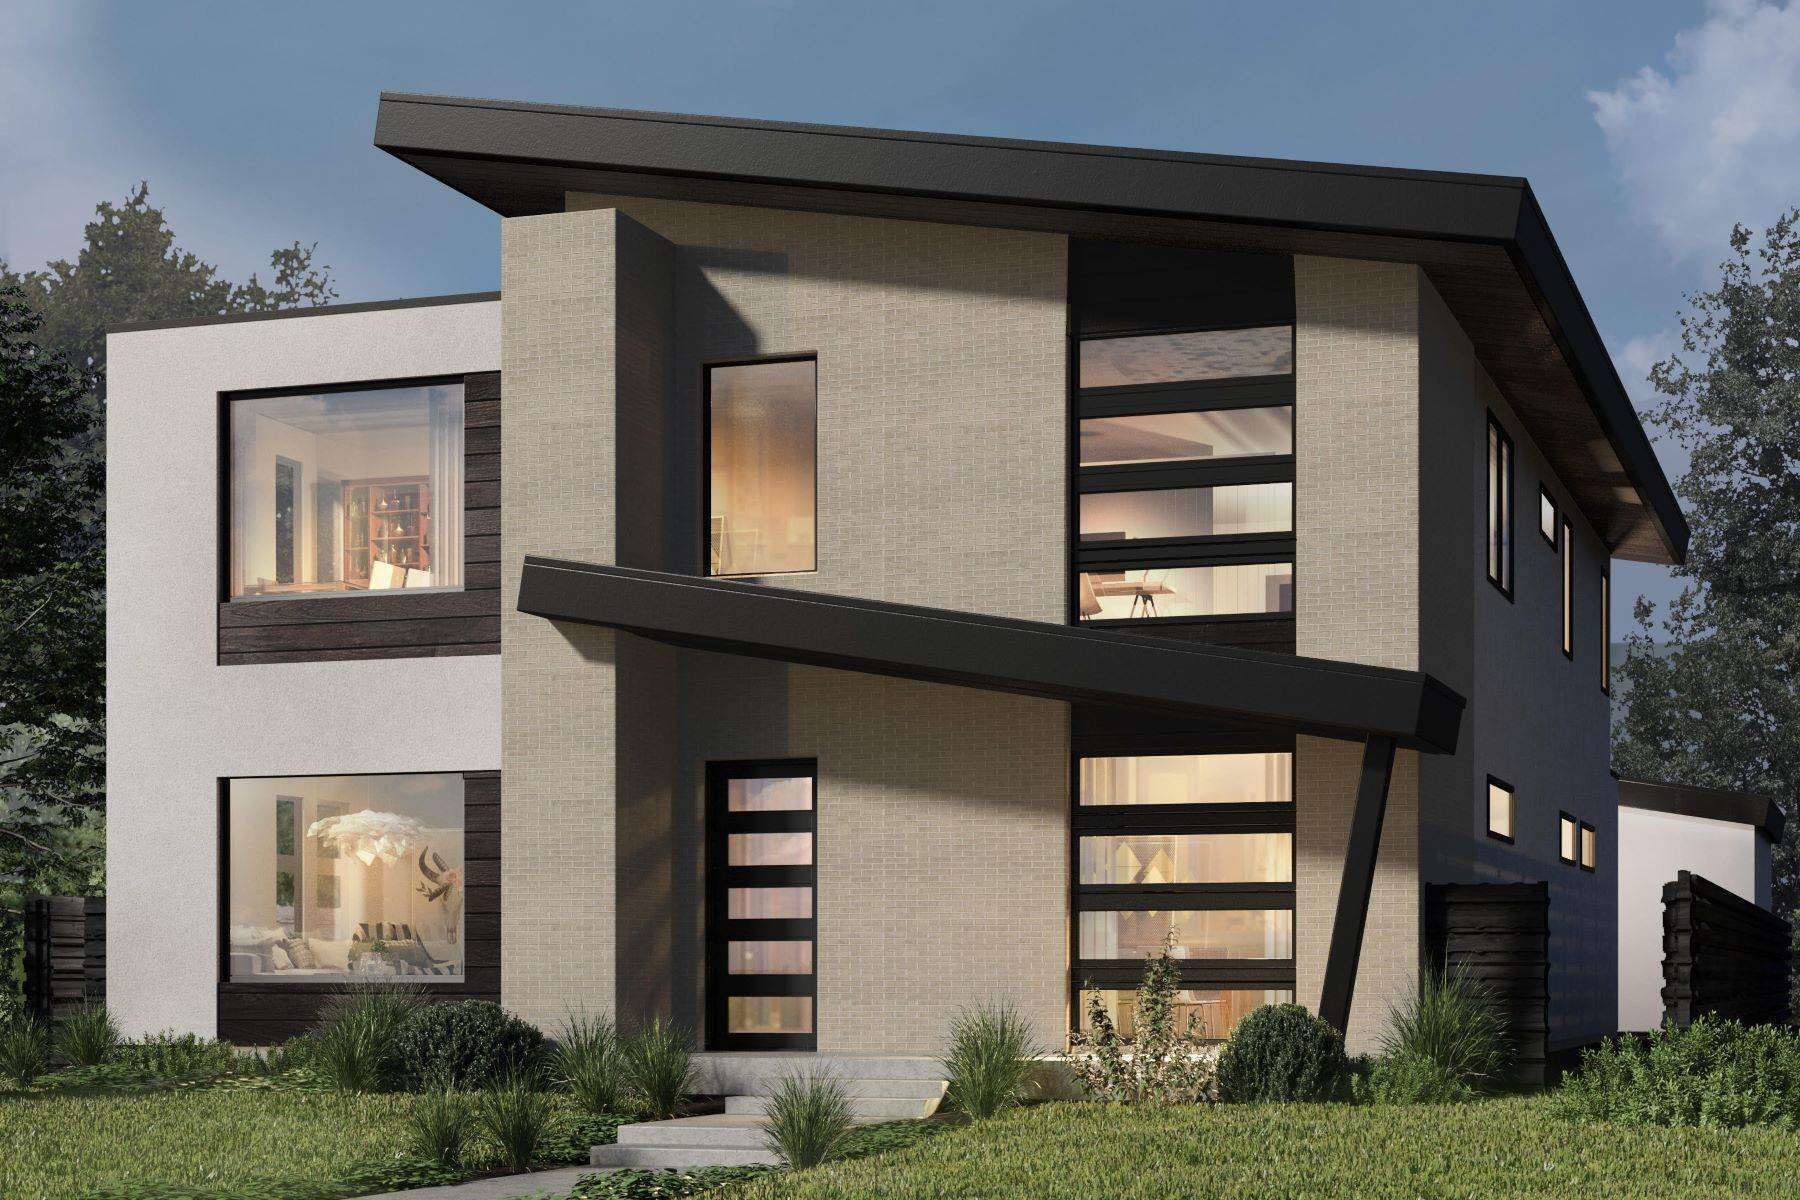 Single Family Homes for Active at Stunning, Unique New Build Designed for Maximum Natural Light 1195 S Monroe Street Denver, Colorado 80210 United States